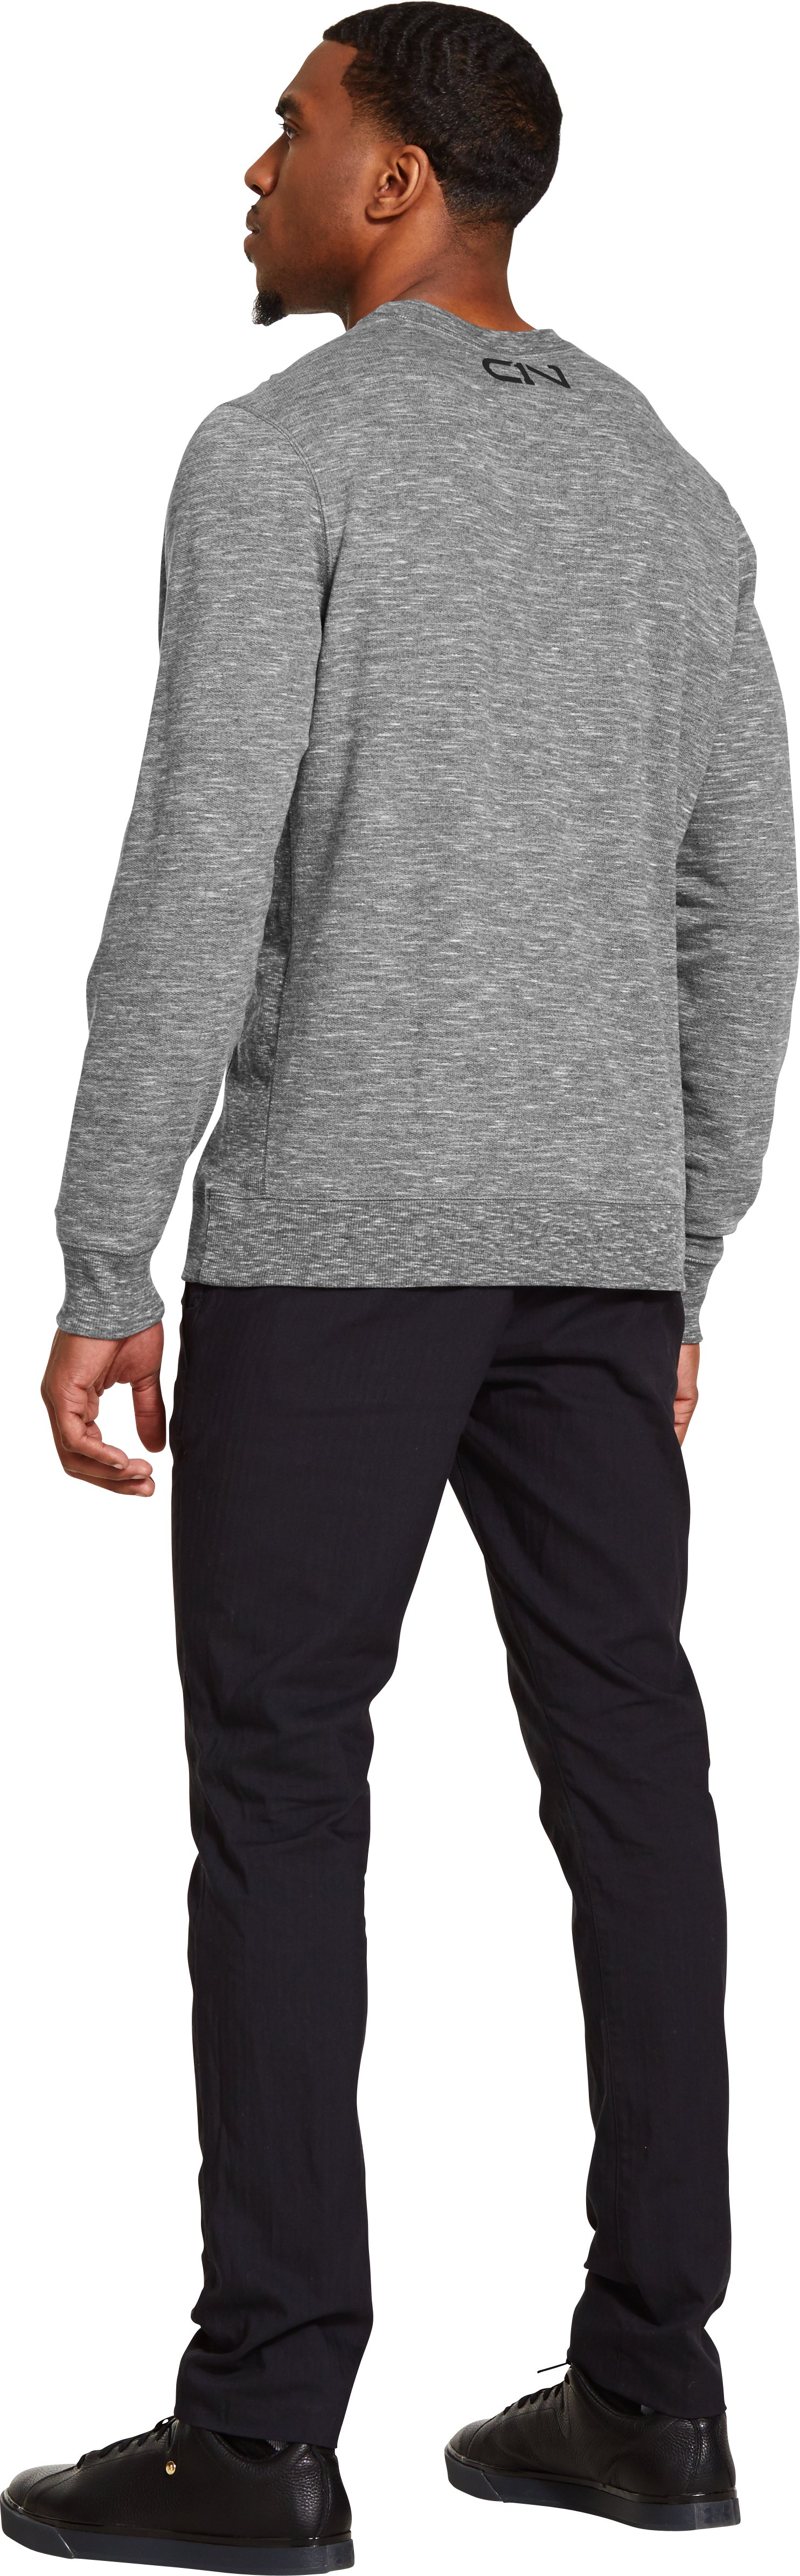 Men's UA Storm C1N Signature Crew, True Gray Heather, Back